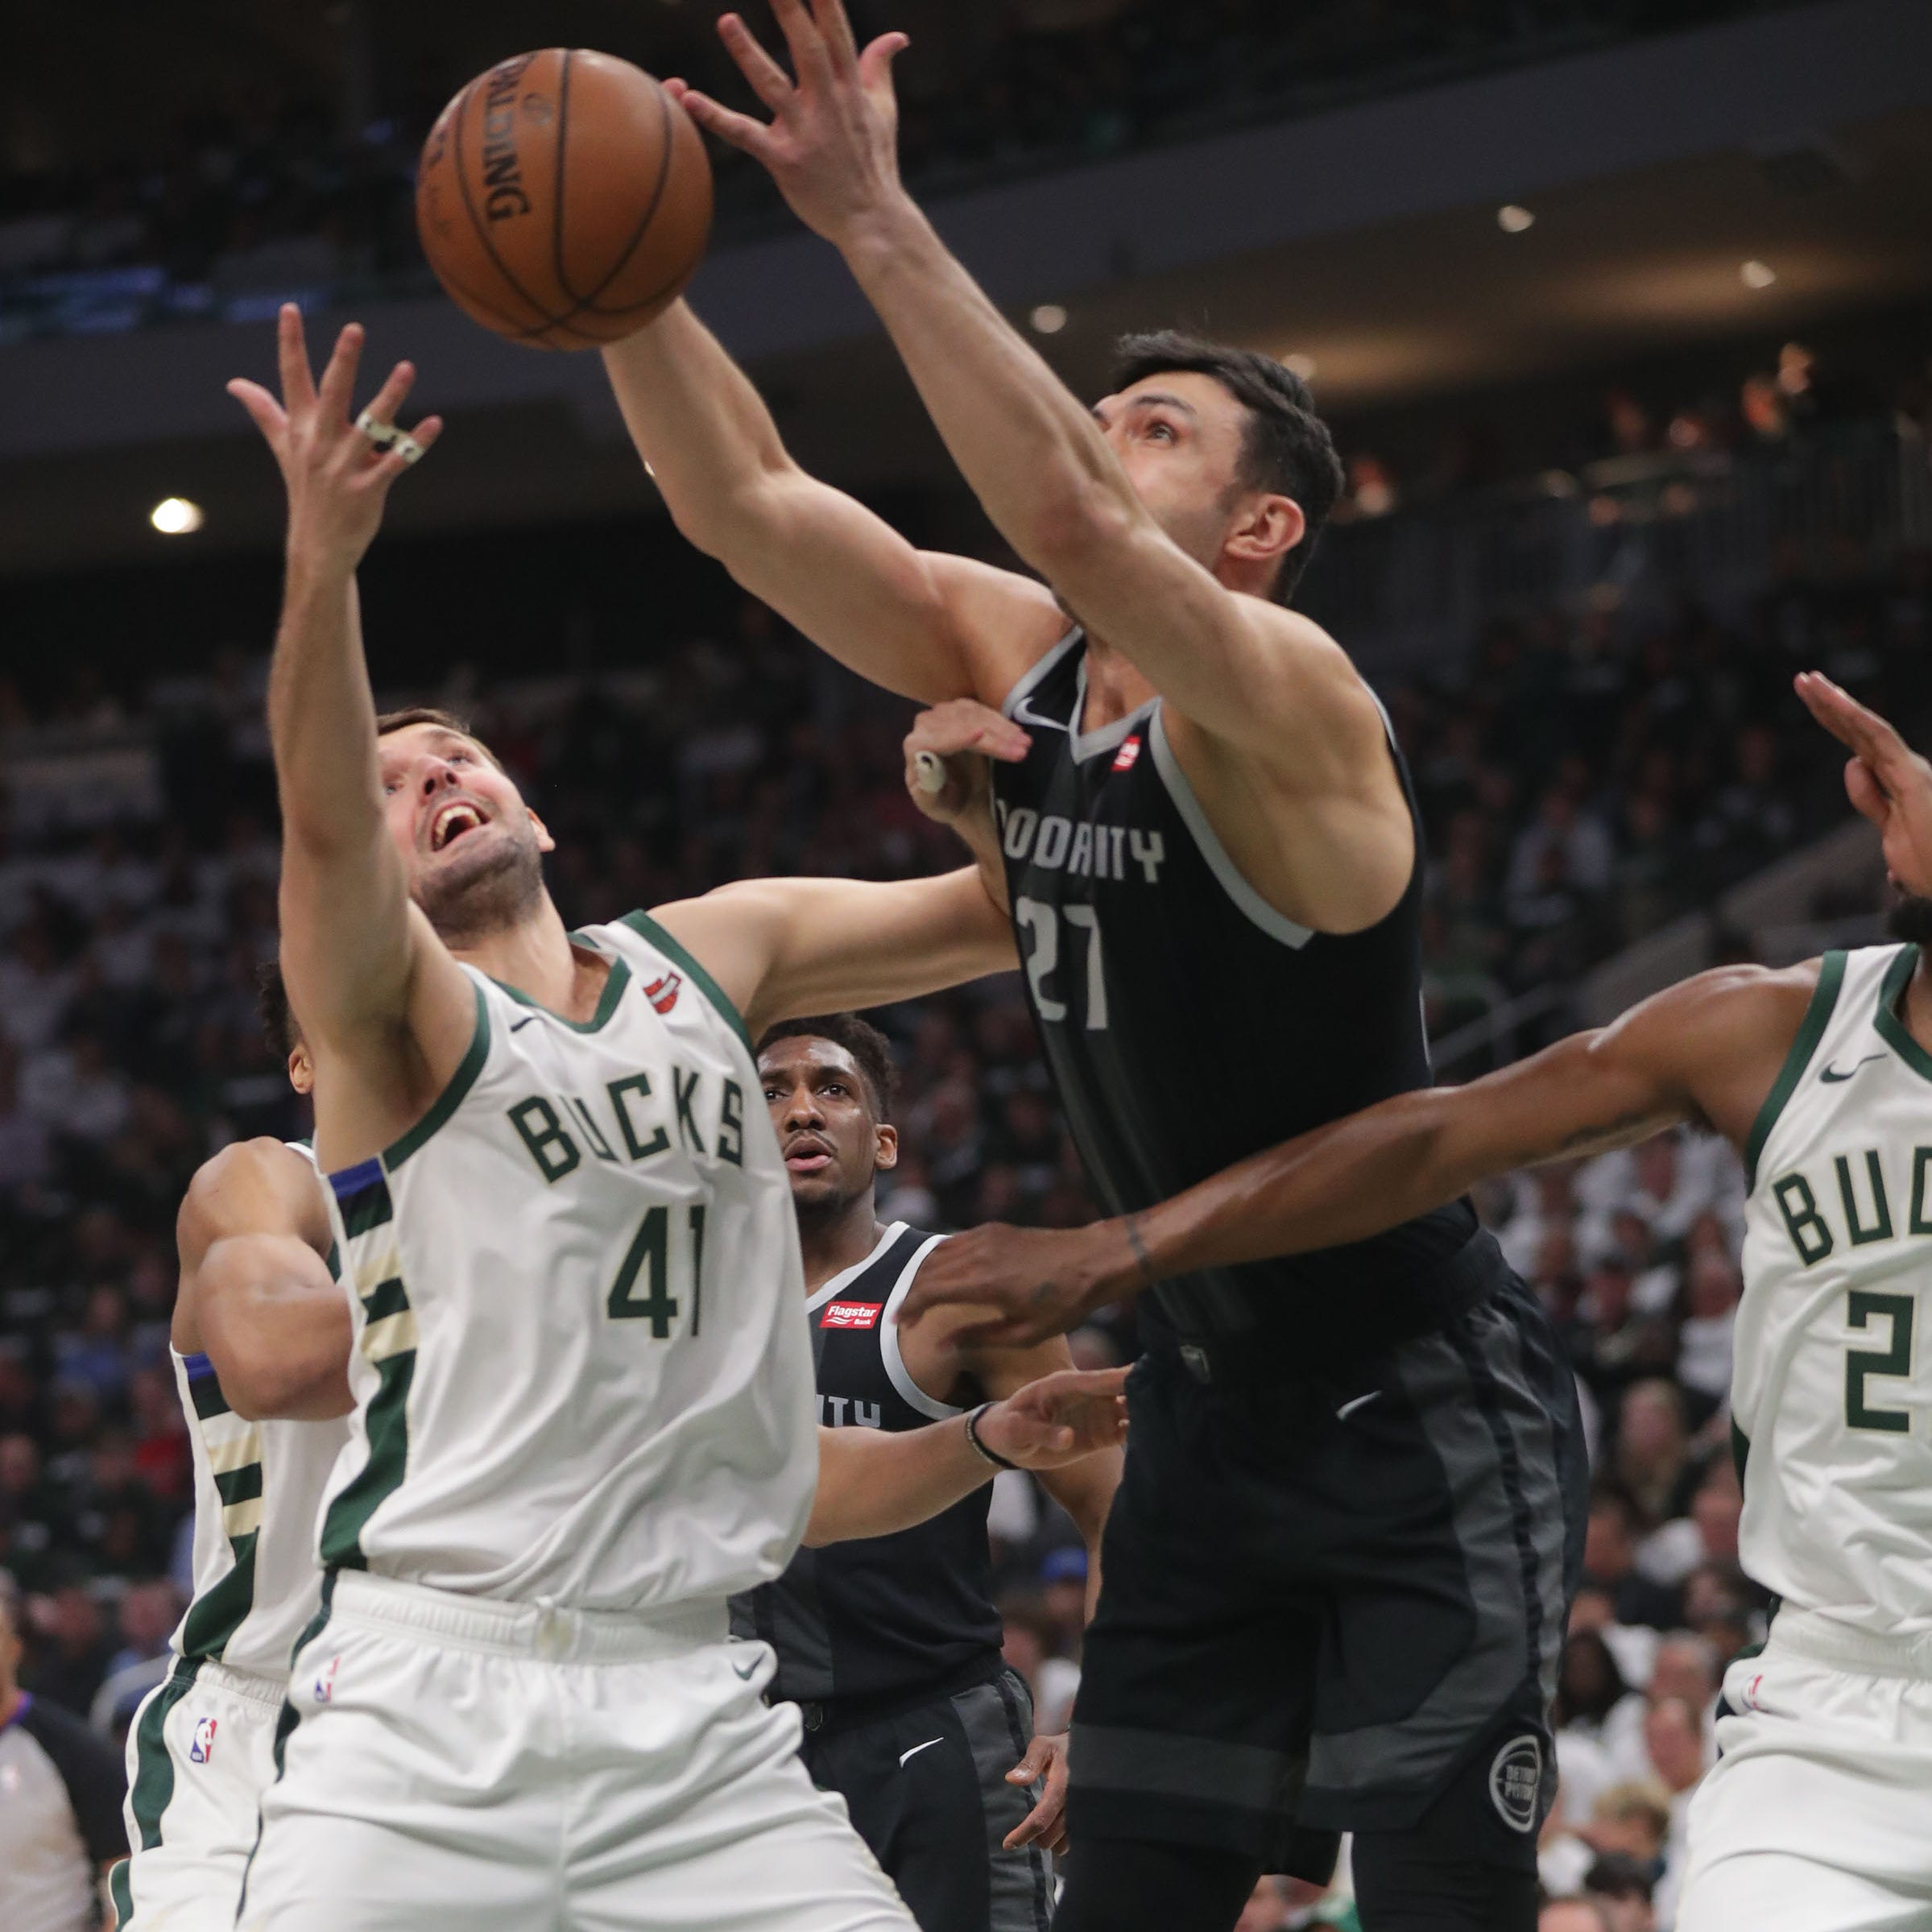 Bucks forward Nikola Mirotic confident in his shot after thumb injury